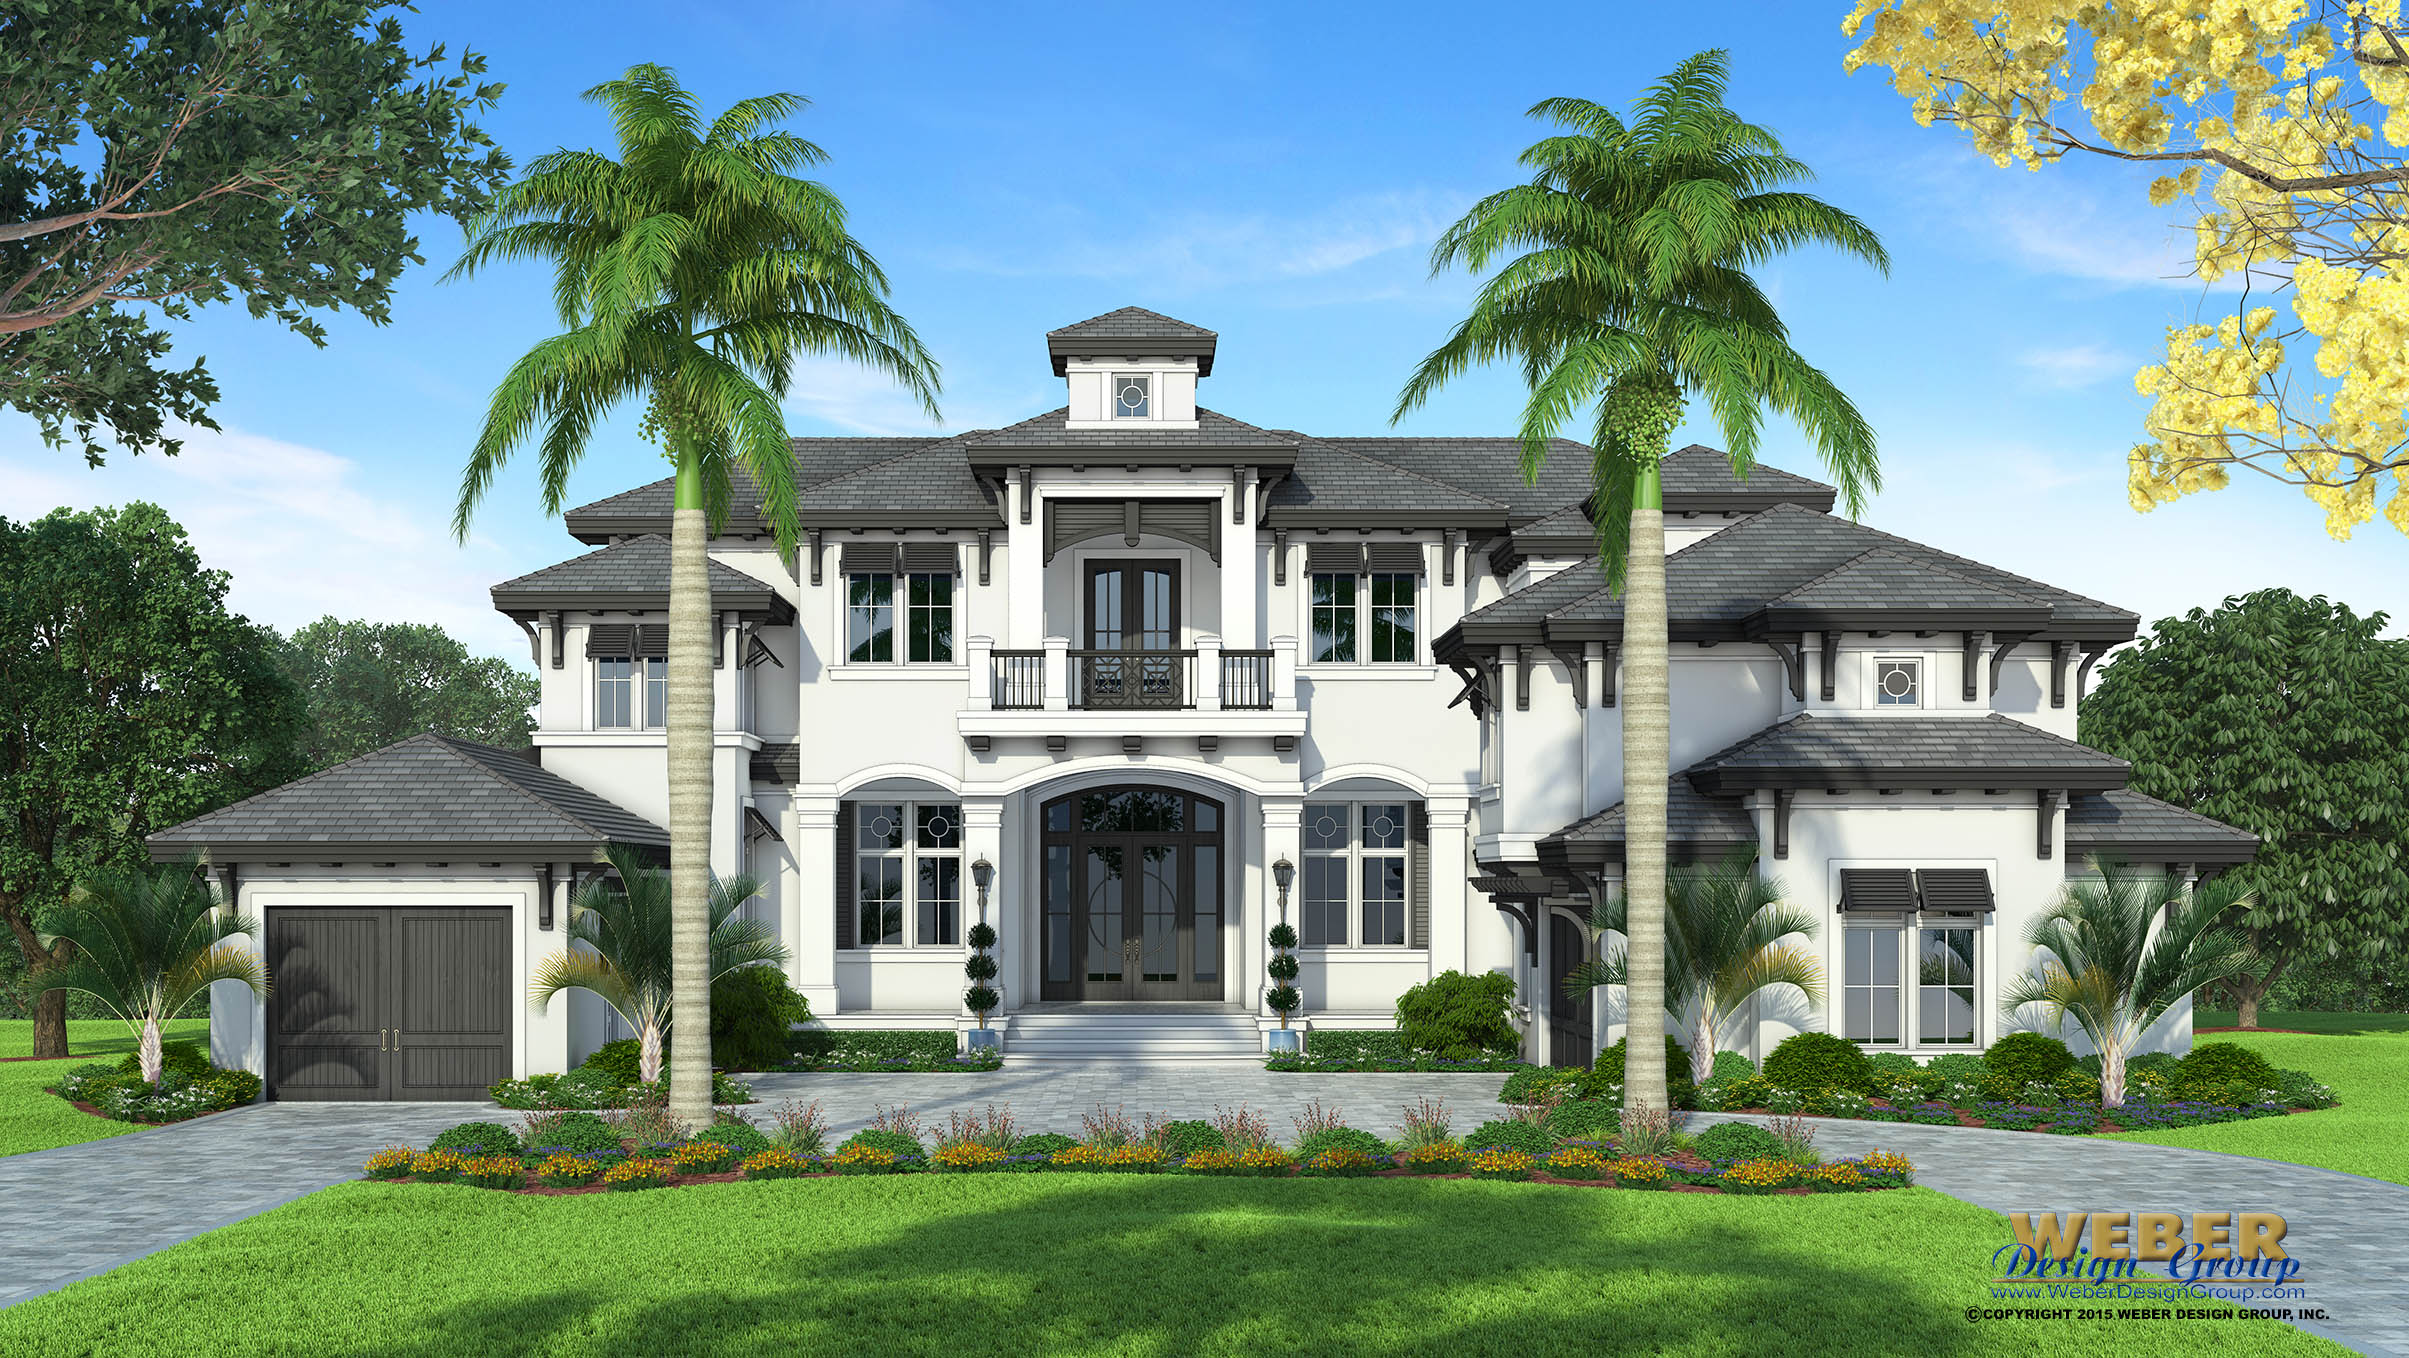 Coastal house plan luxury 2 story west indies home floor plan for Weber design